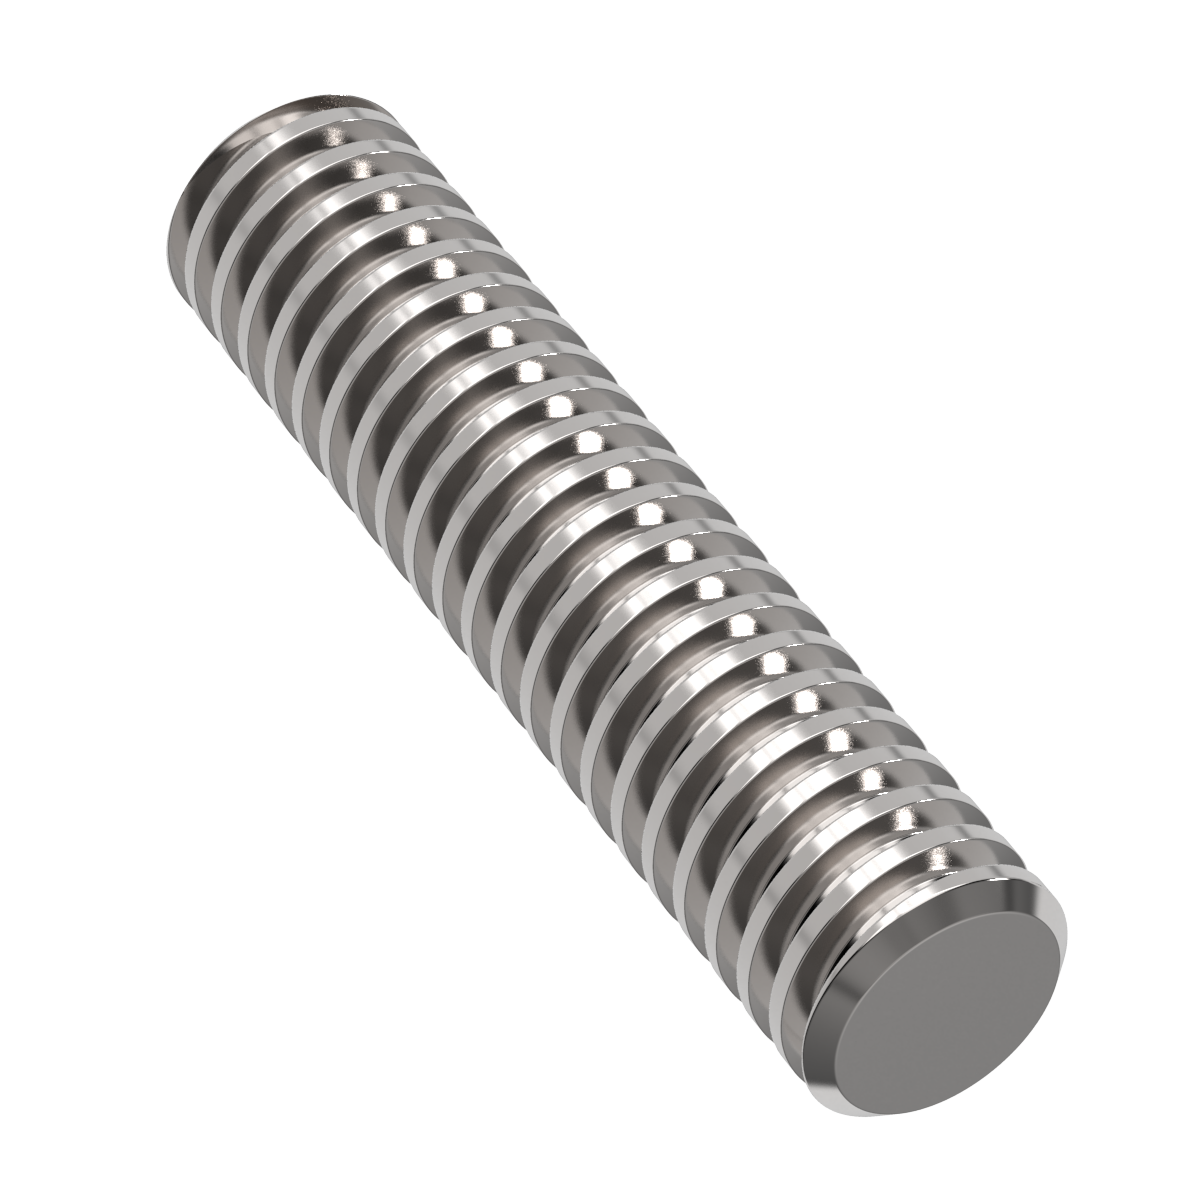 047393LS Lead Screw